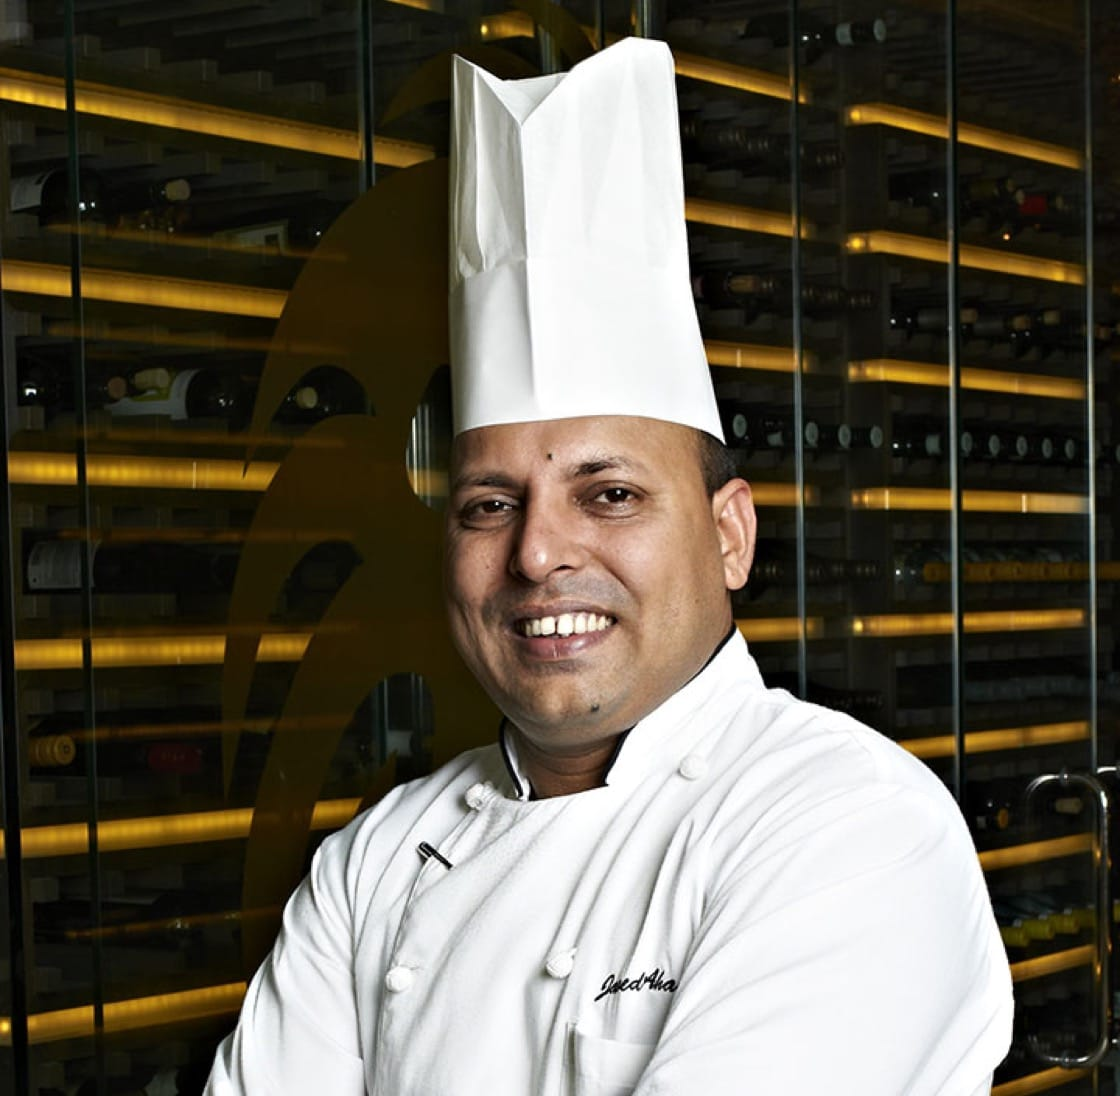 Cropped Image of Chef Javed from Punjab Grill.jpg